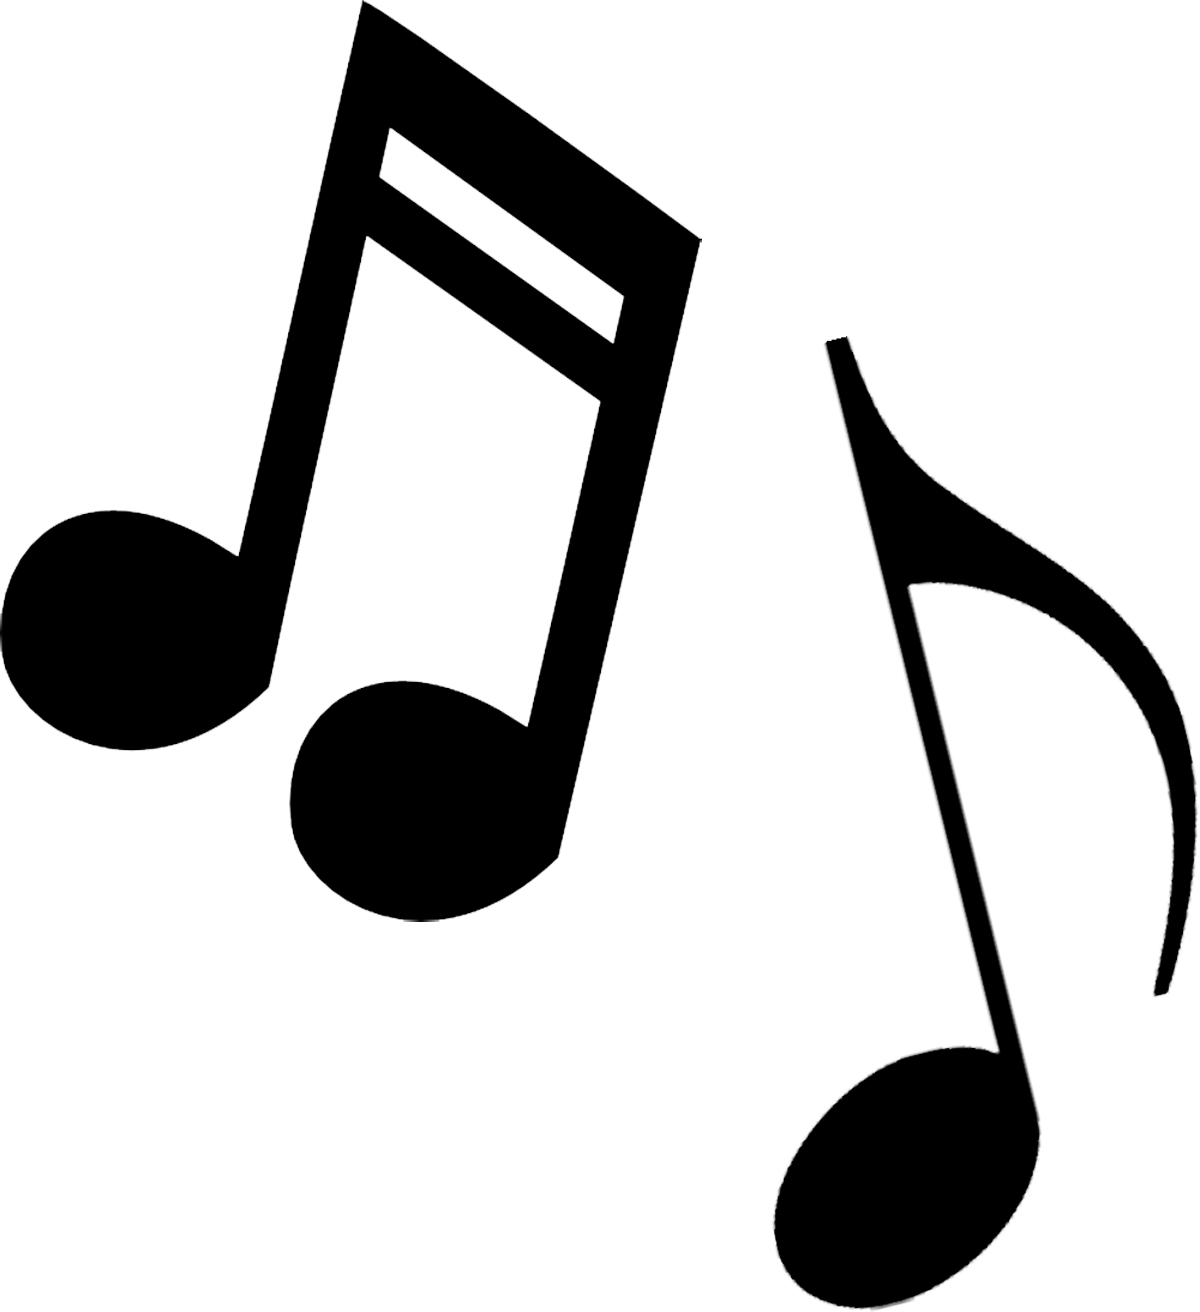 Music notes black and white free music note clip art.